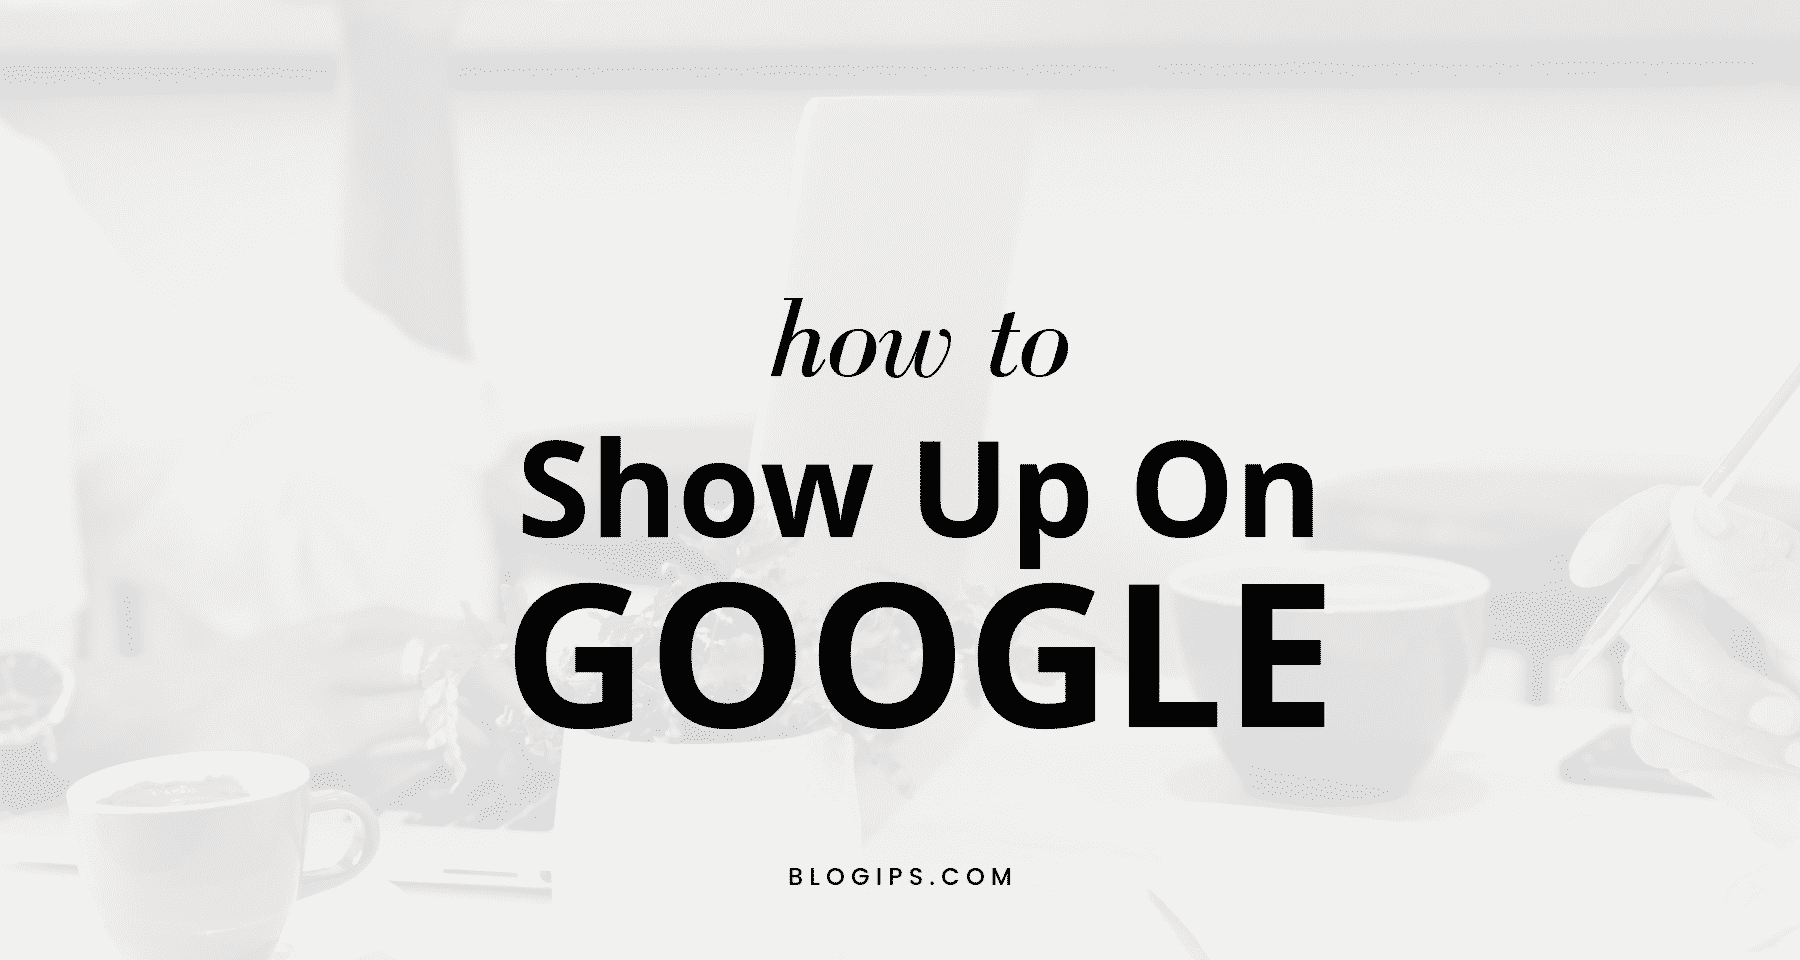 Submit URL To Google Search Console (4 Easy Steps)